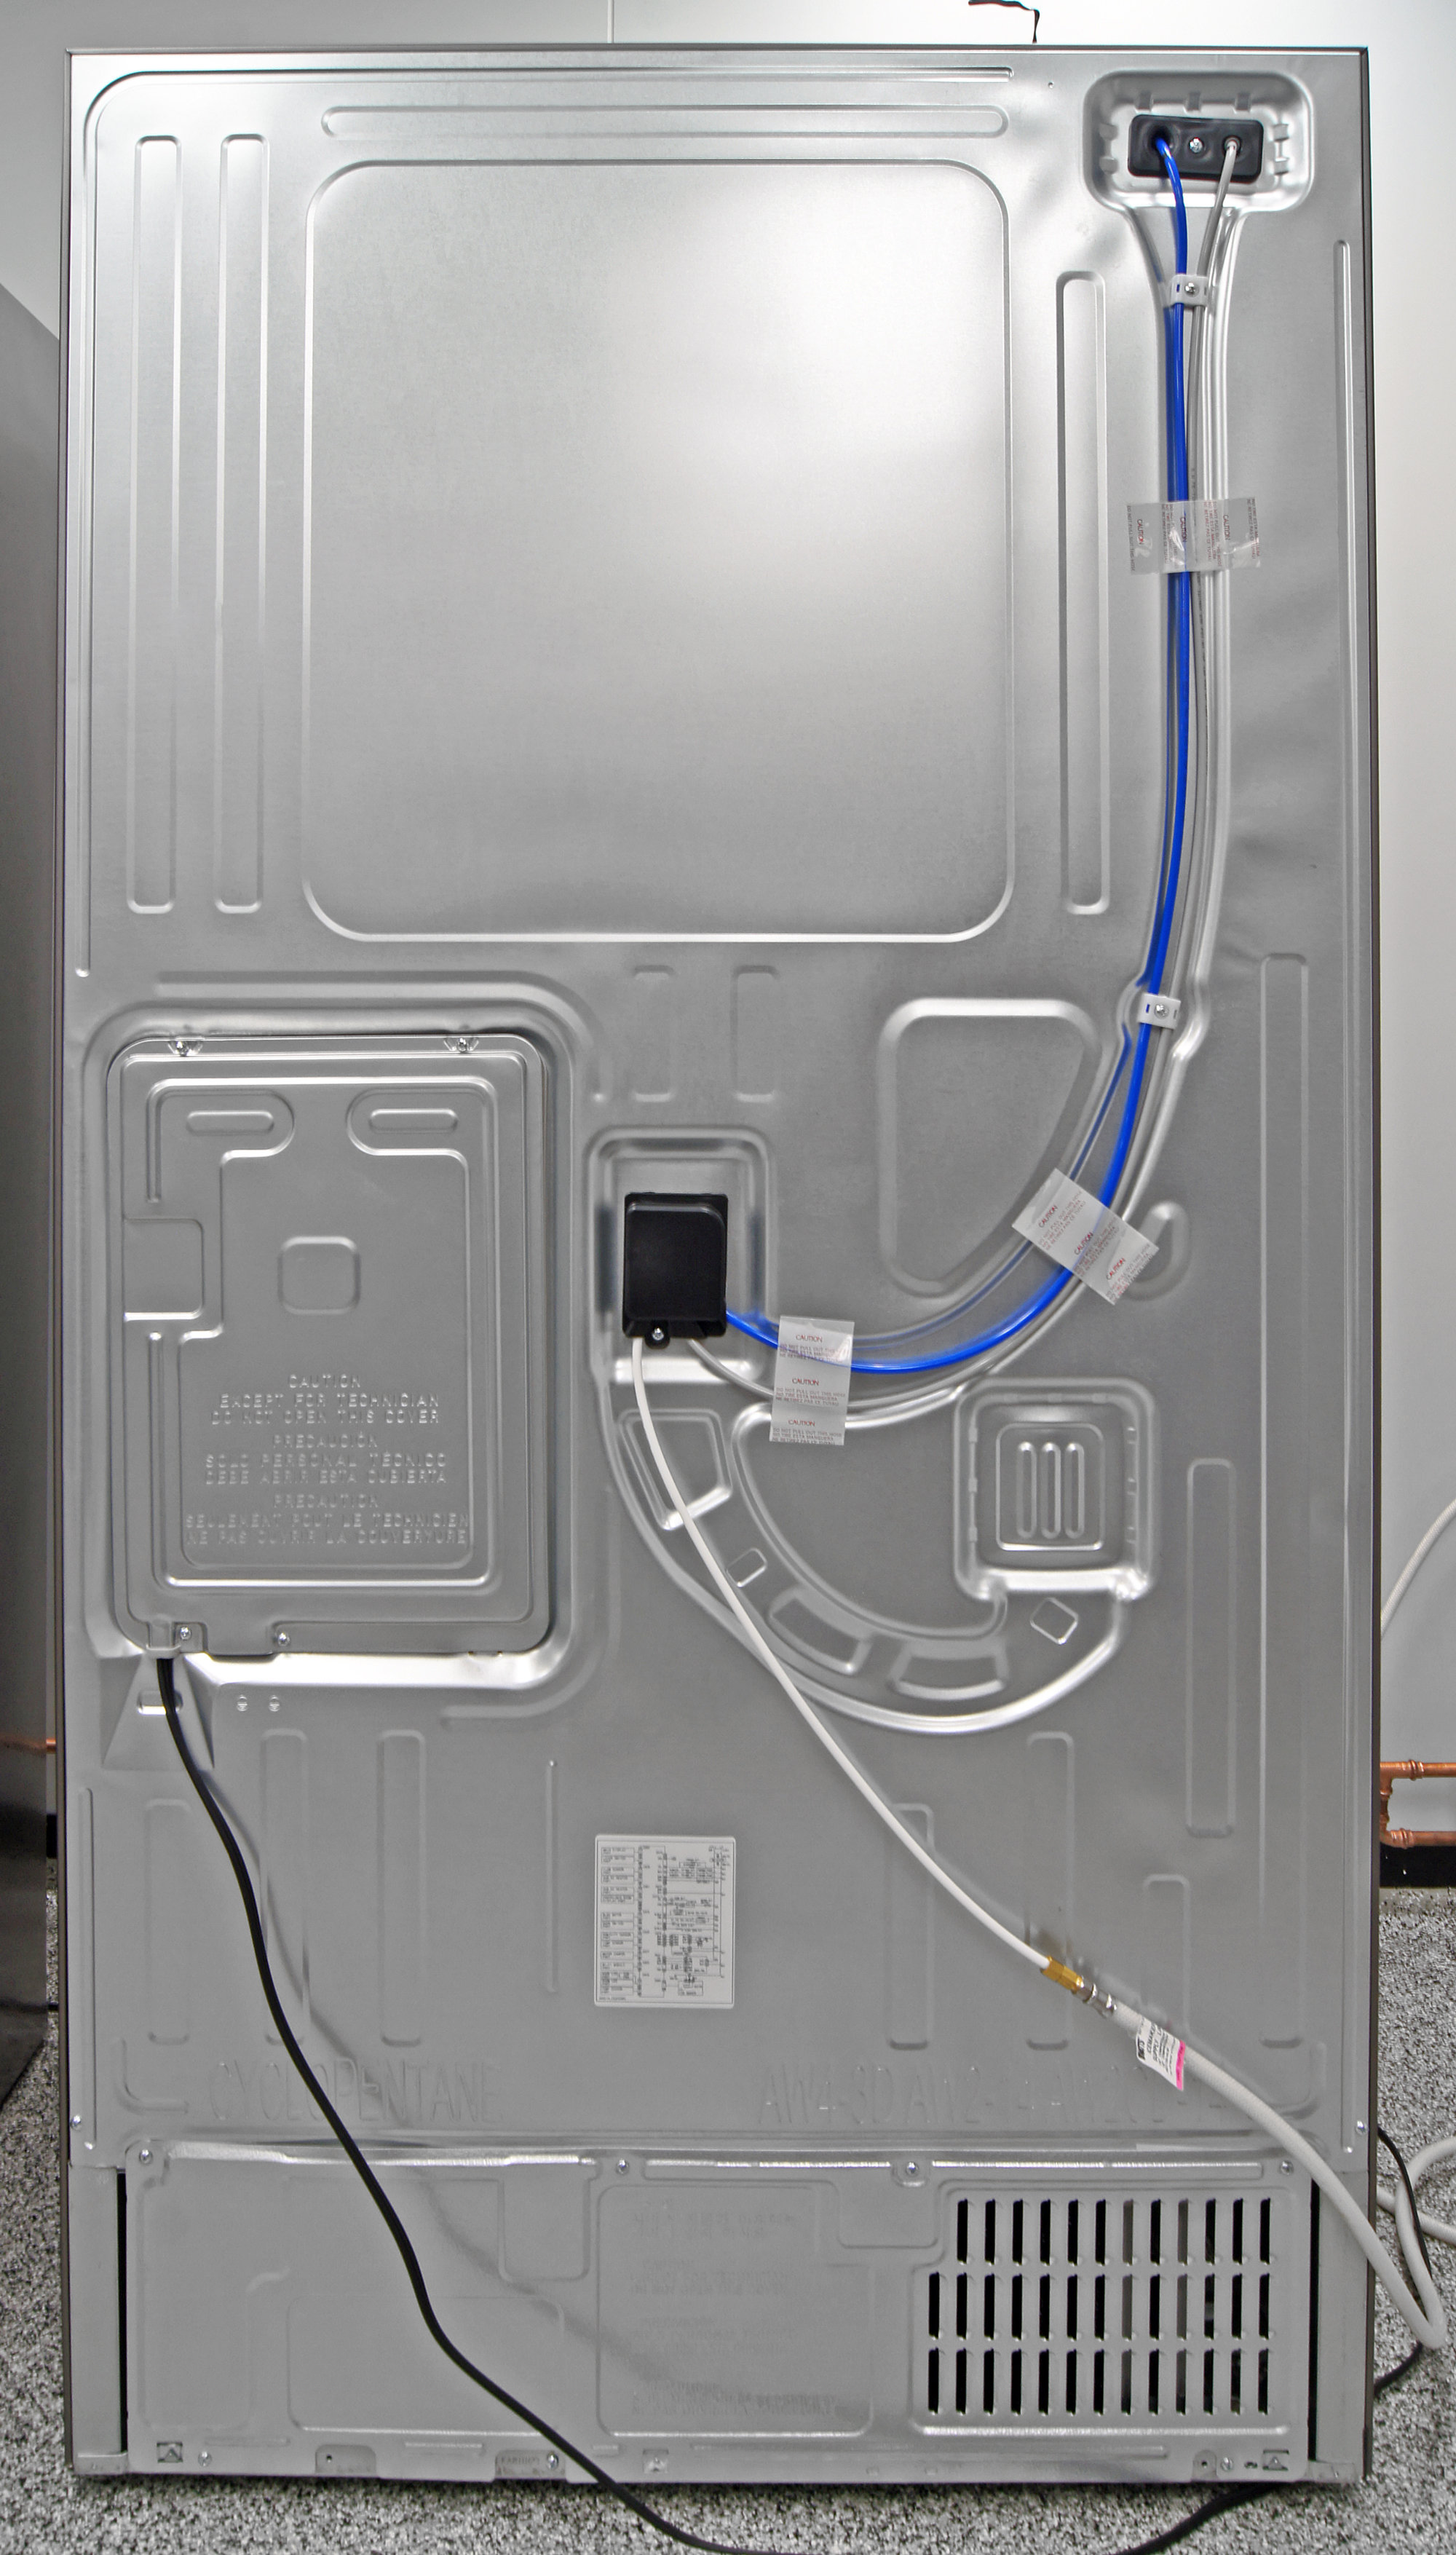 In back, you find the Samsung RF23HTEDBSR's power cable and the water input.